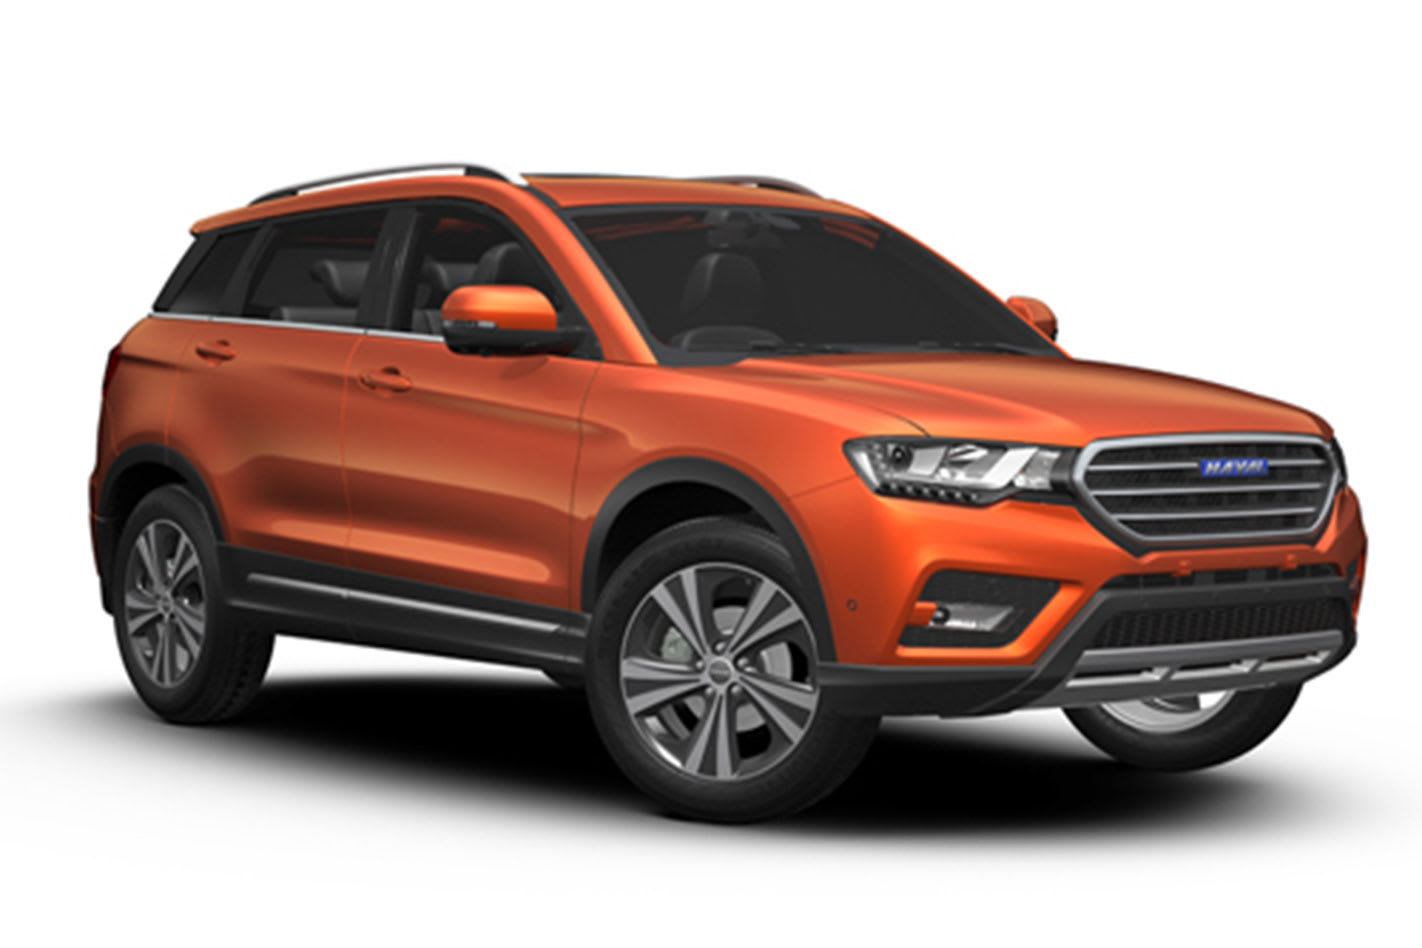 2016 Haval H6 Coupe